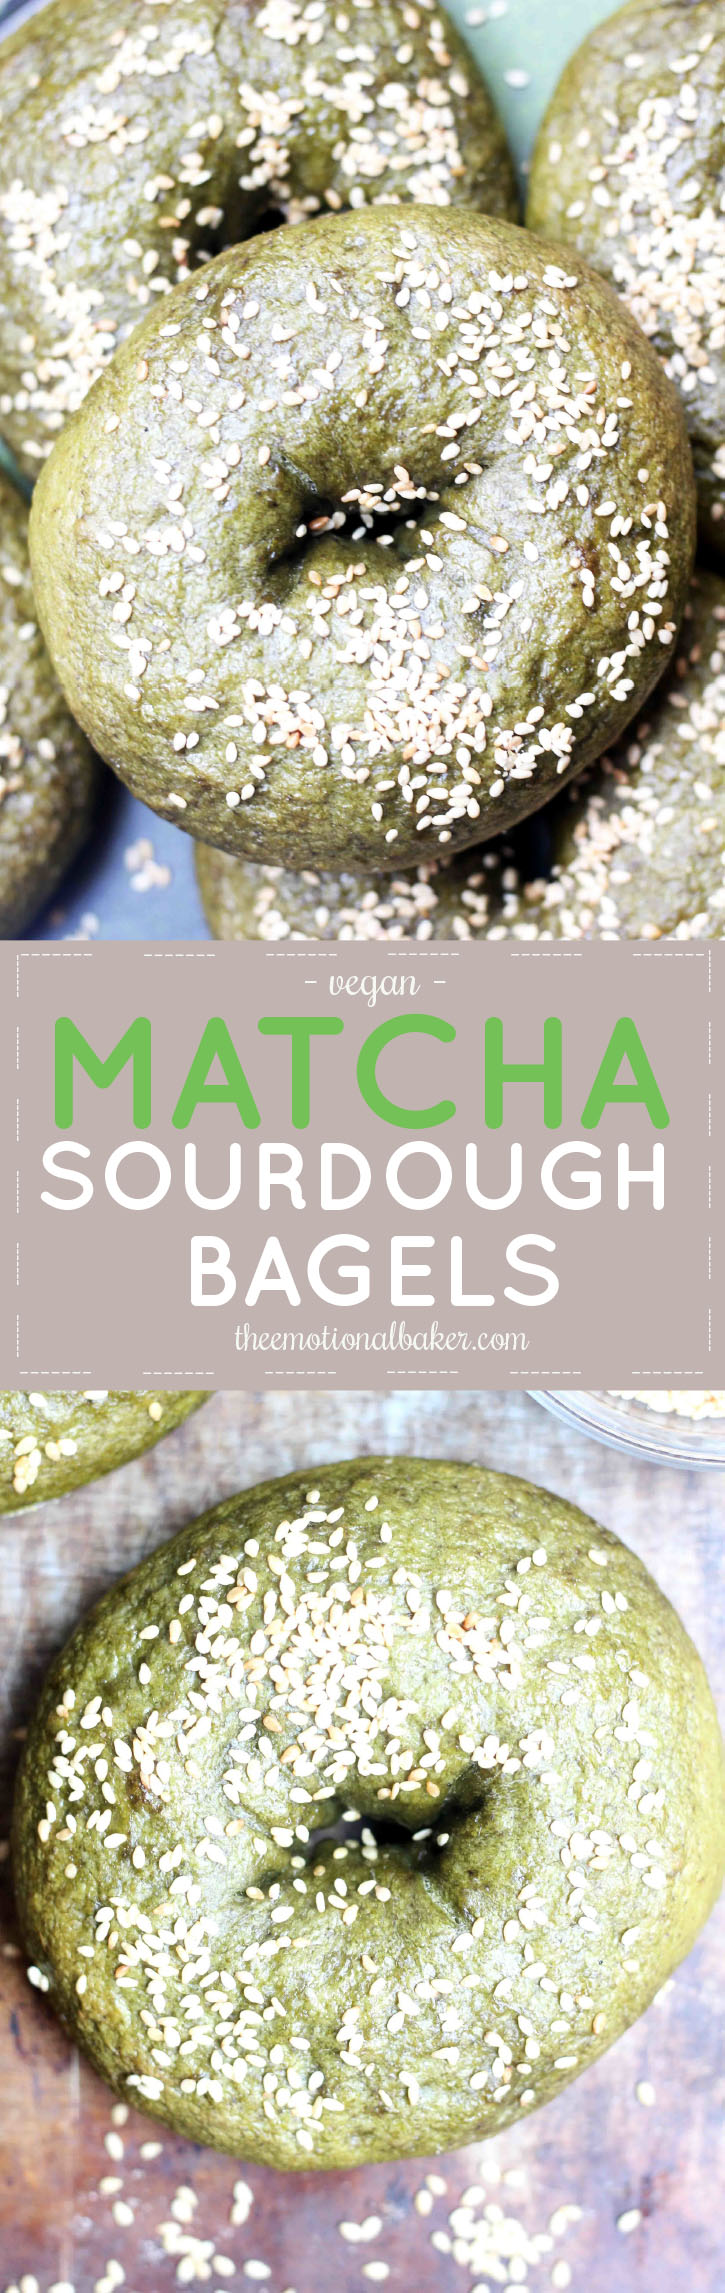 Matcha Sourdough Bagels -- You can make bagels at home! Easy recipe featuring matcha powder and sourdough starter.